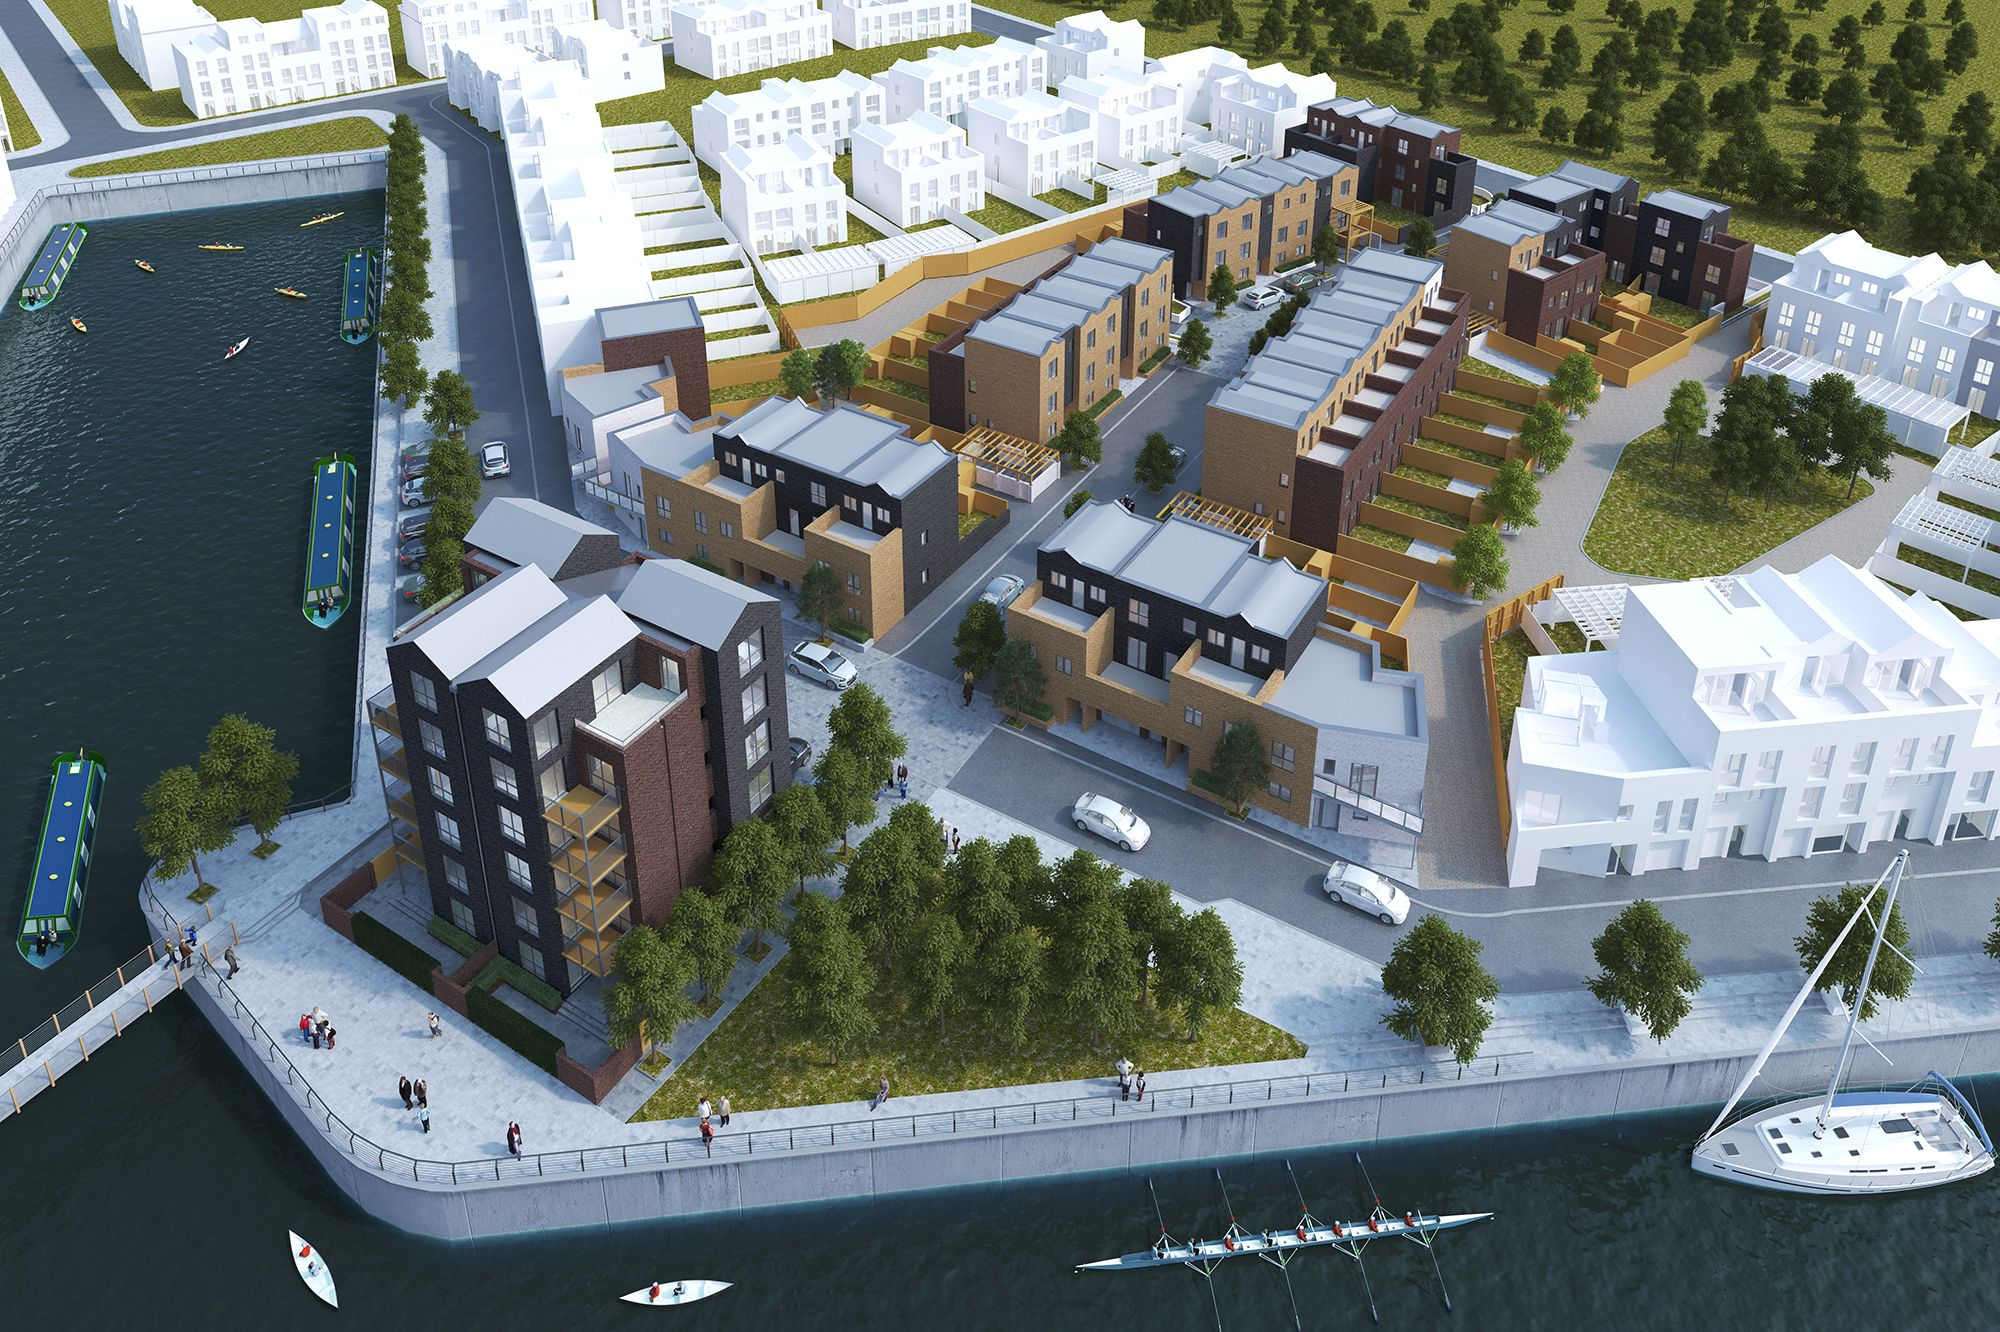 Eventually trent basin will provide 350 low energy apartments and family homes designed around community spaces as can be seen from the cgi below